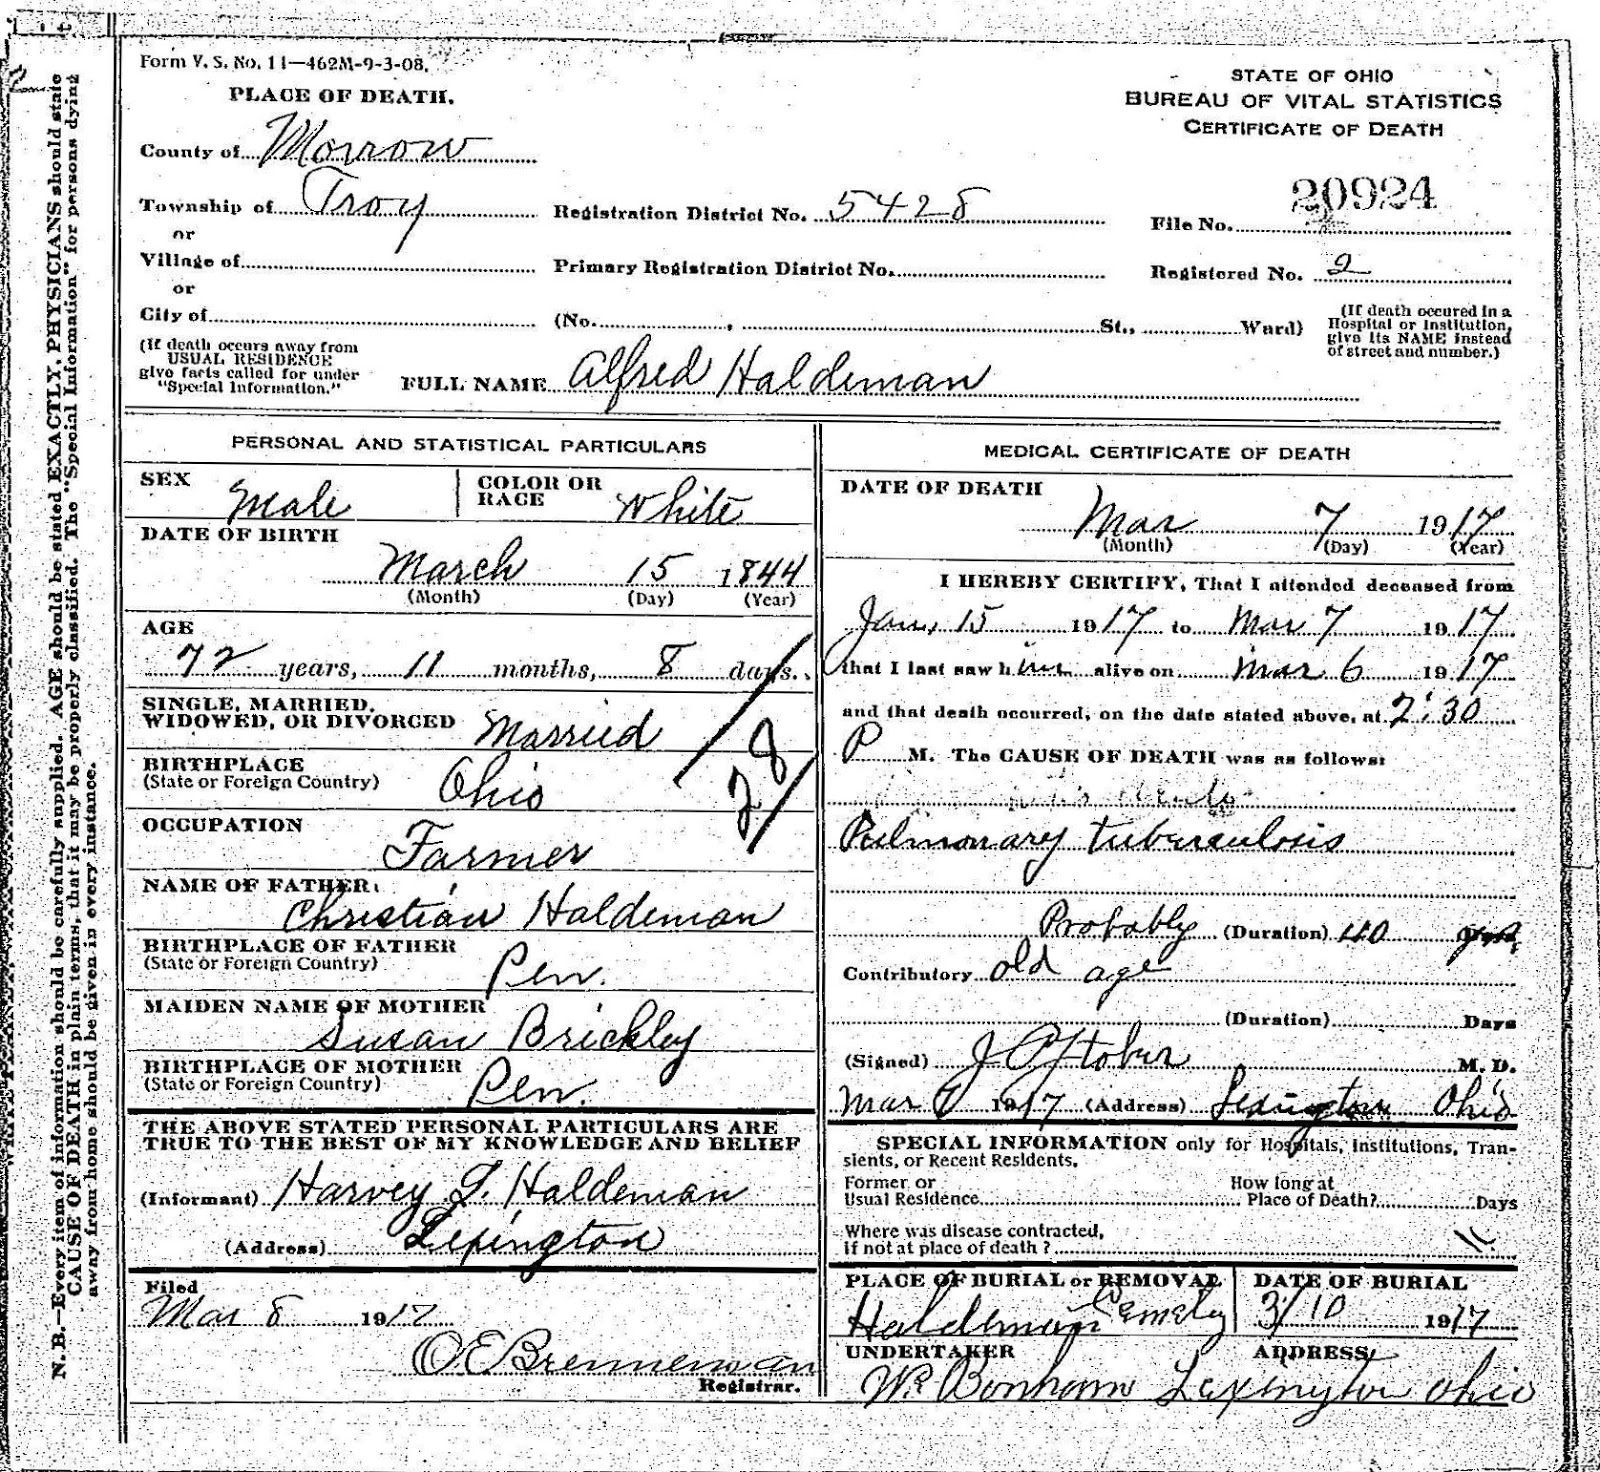 Ohio death certificate sample choice image certificate design new photograph of death certificates ohio business cards and record alfred haldeman 1917 morrow county ohio aiddatafo Image collections